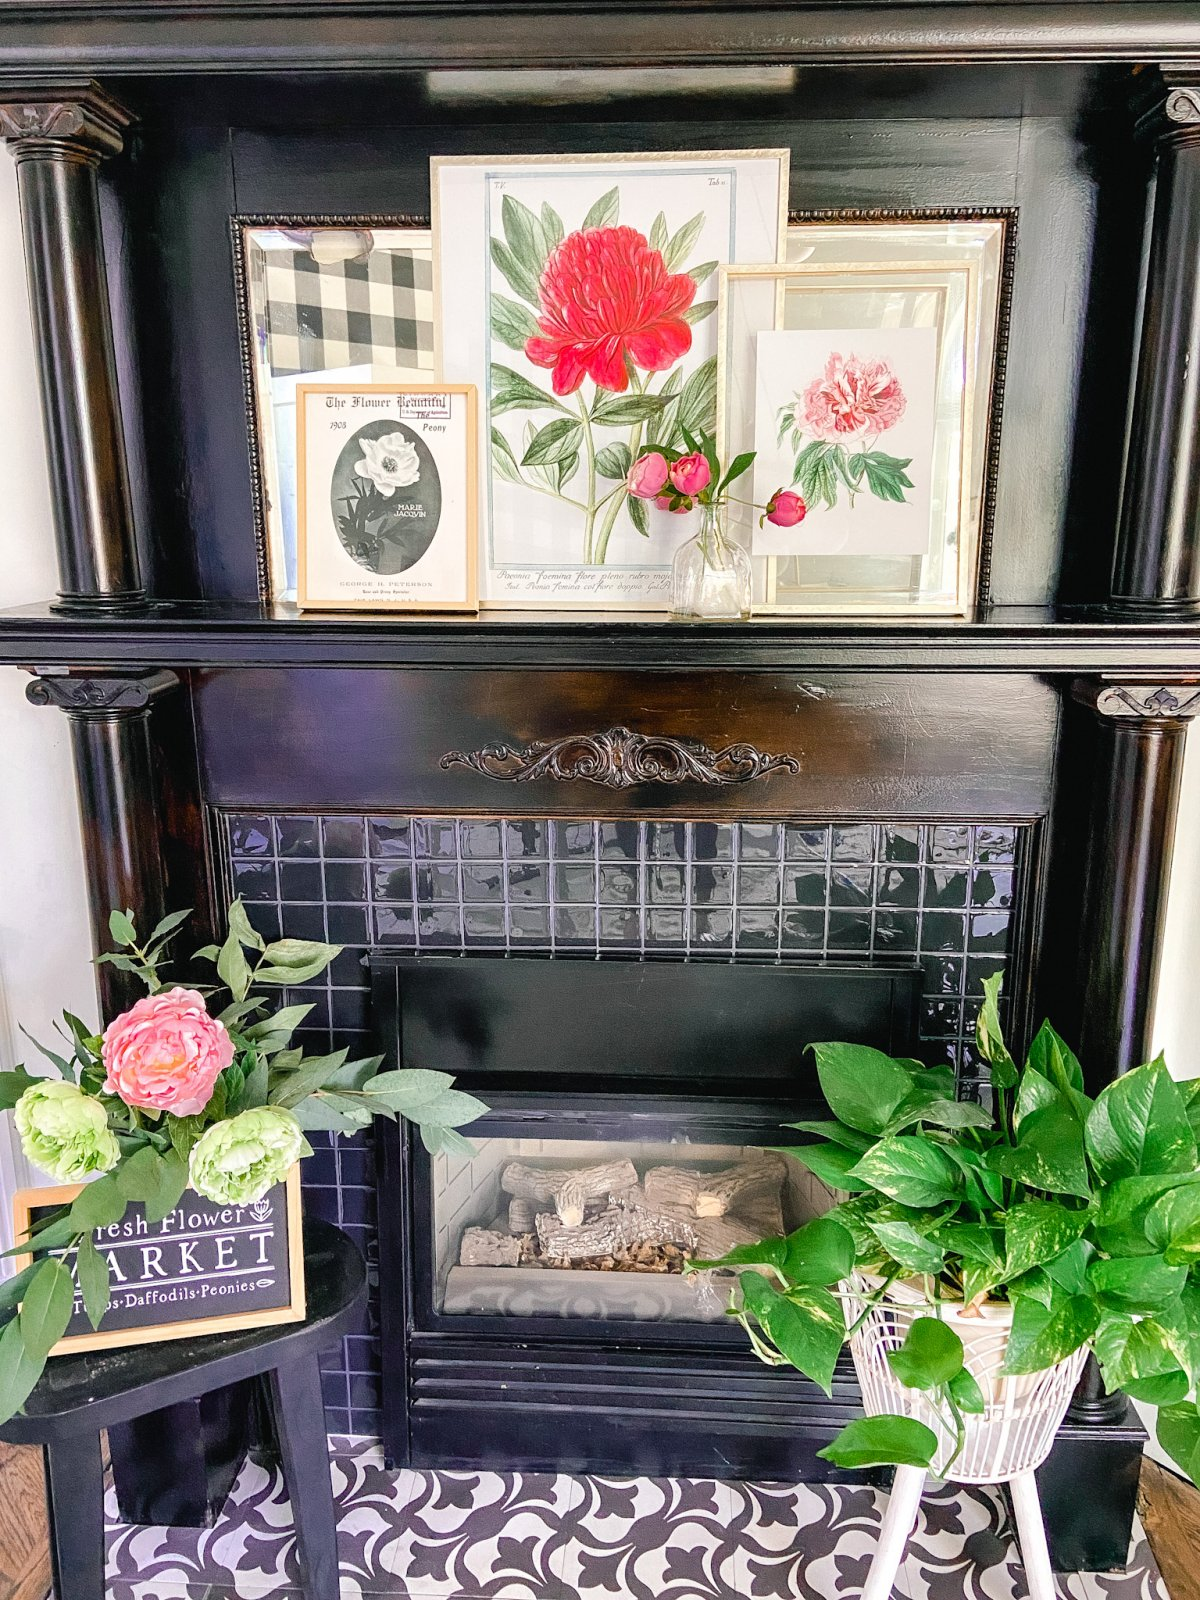 Three Free Vintage Peony Prints. Celebrate warm weather and peonies by printing off these prints and displaying them for instant summer decor.